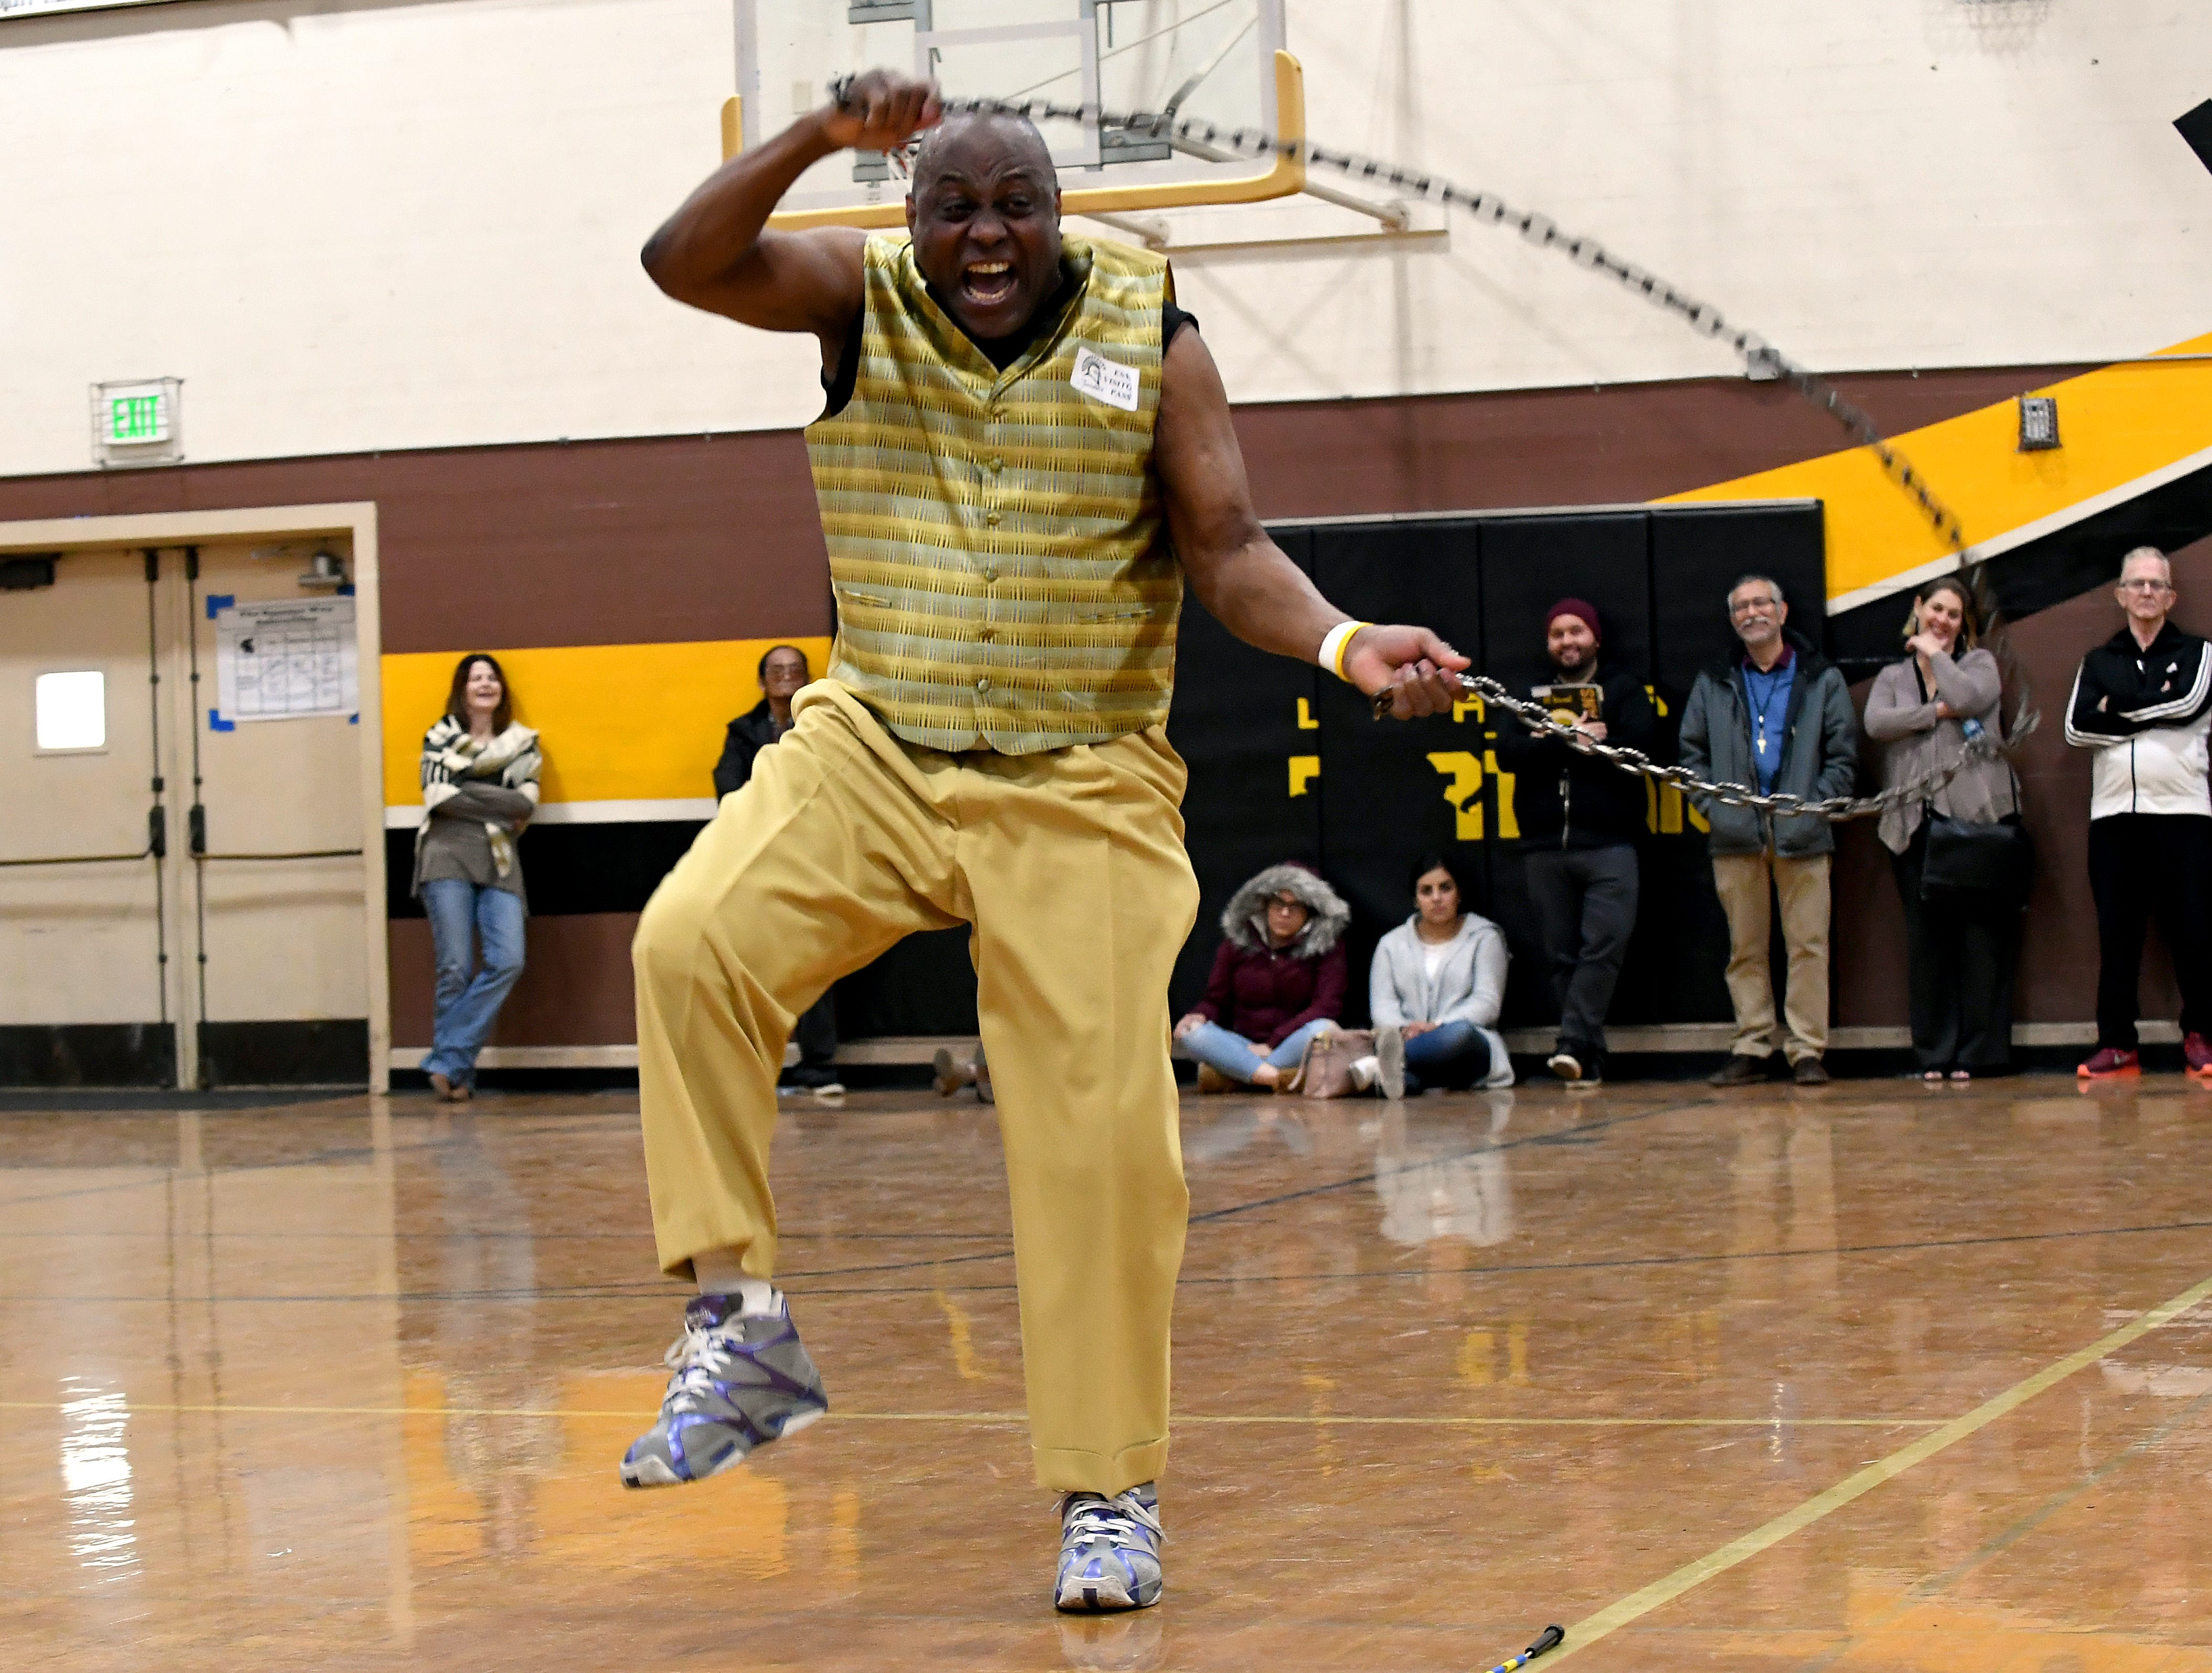 James Thompson performs with a metal chain during a visit to El Sausal Middle School on Feb. 21, 2019.